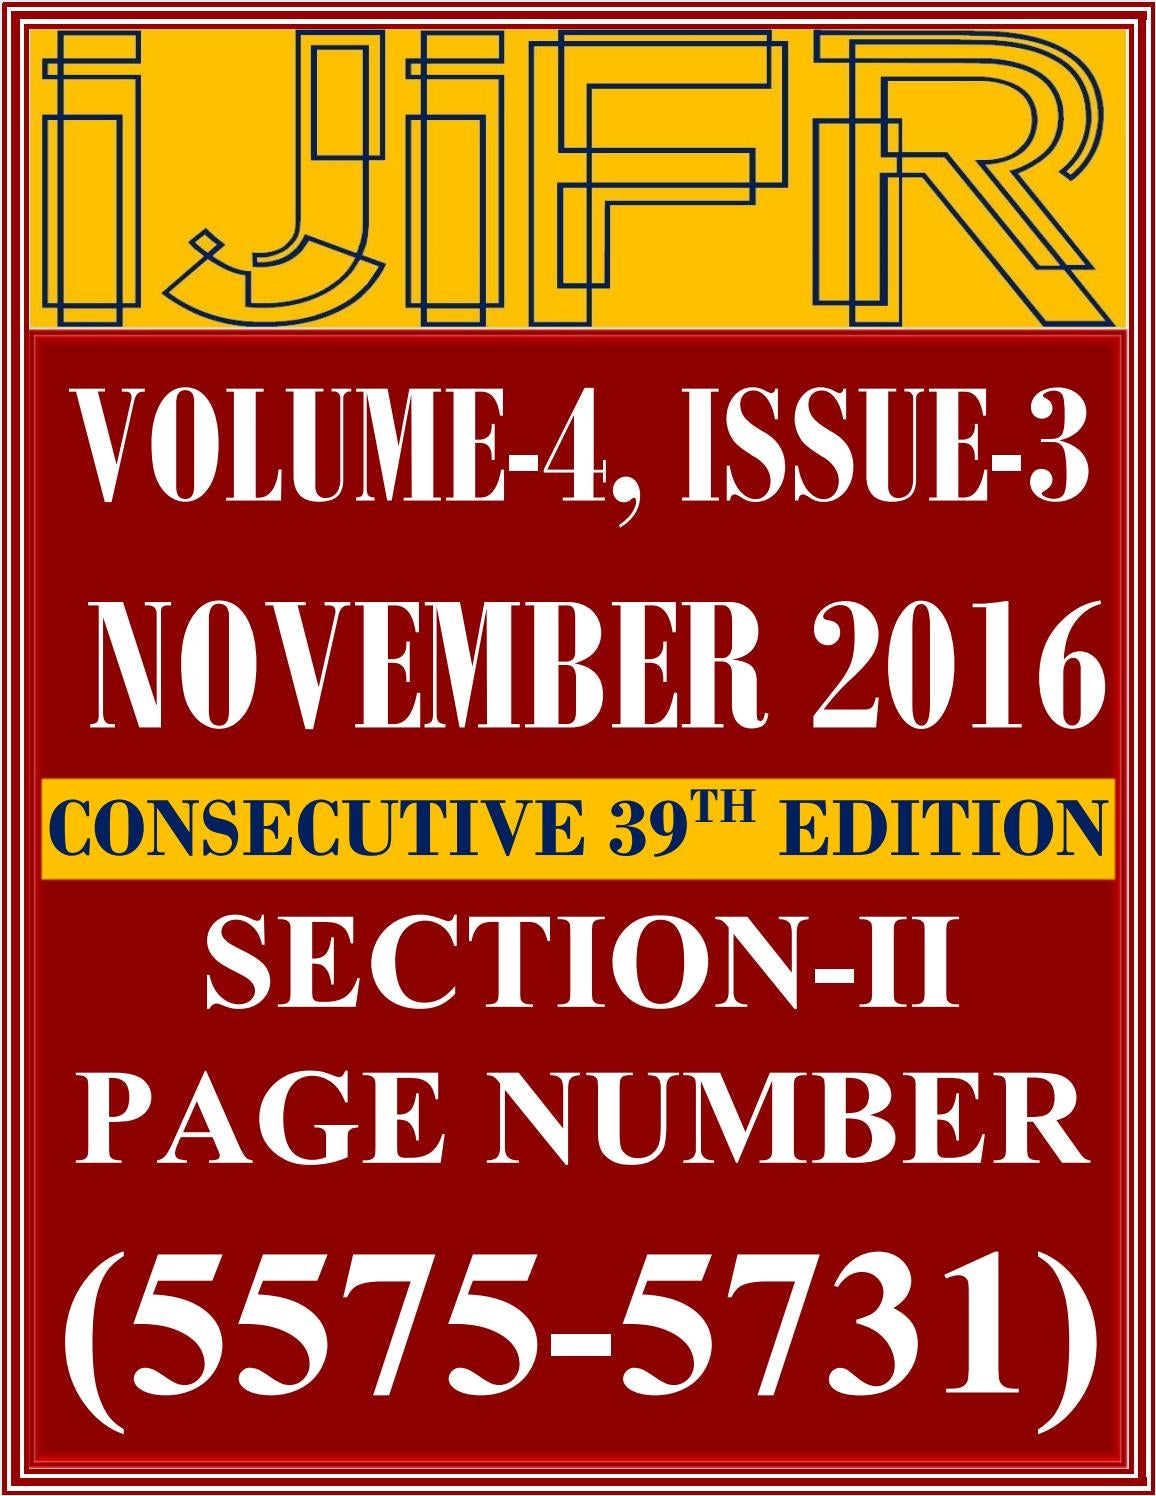 Section Ii Ijifr Volume 4 Issue 3 November 2016 By International This Simple Circuit Http Www Circuitdiagram Org Nicd N R Html Journal Of Informative And Futuristic Research Issuu